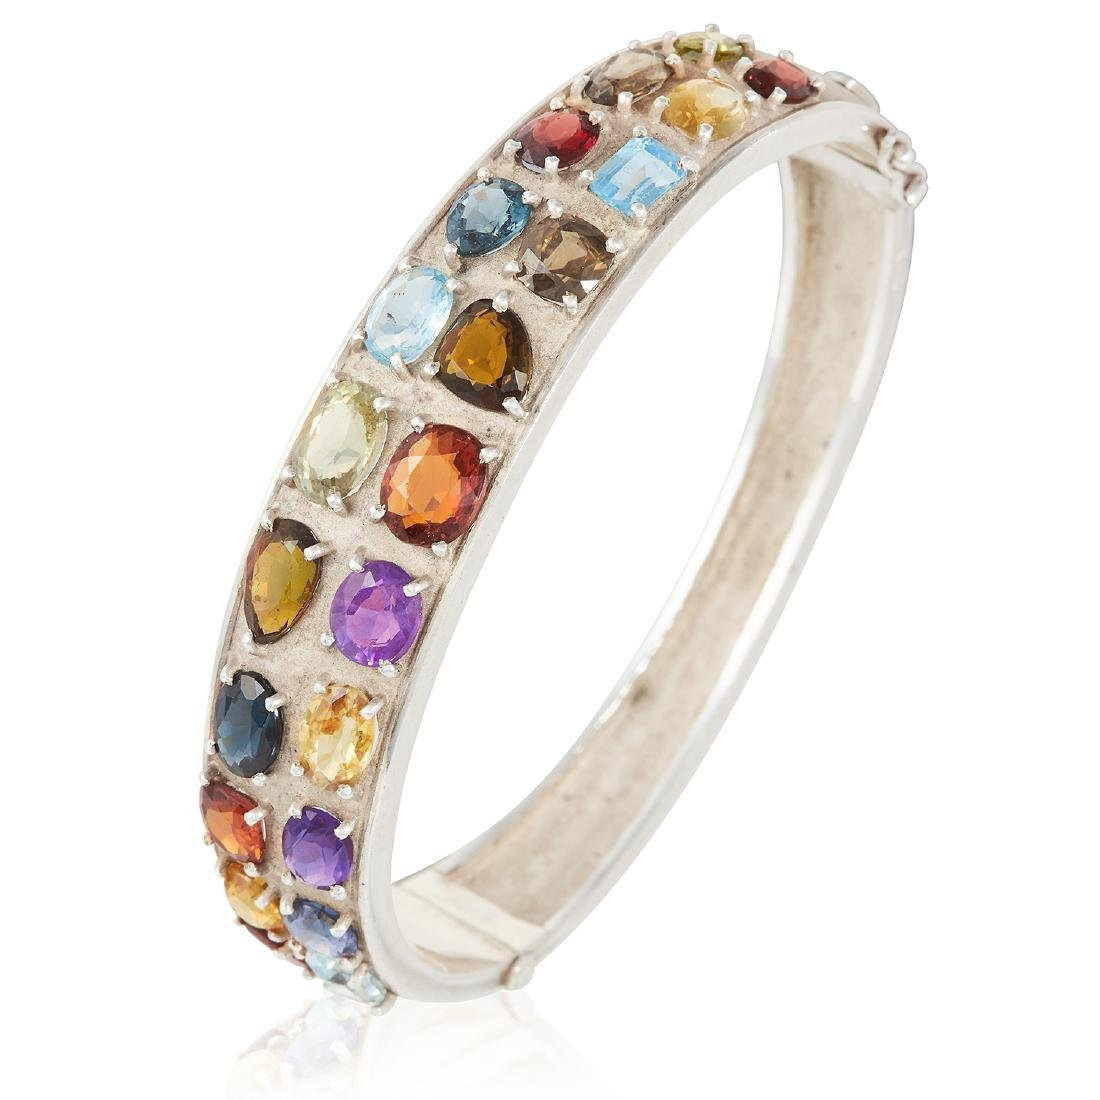 A GEM SET BANGLE in sterling silver, set with various